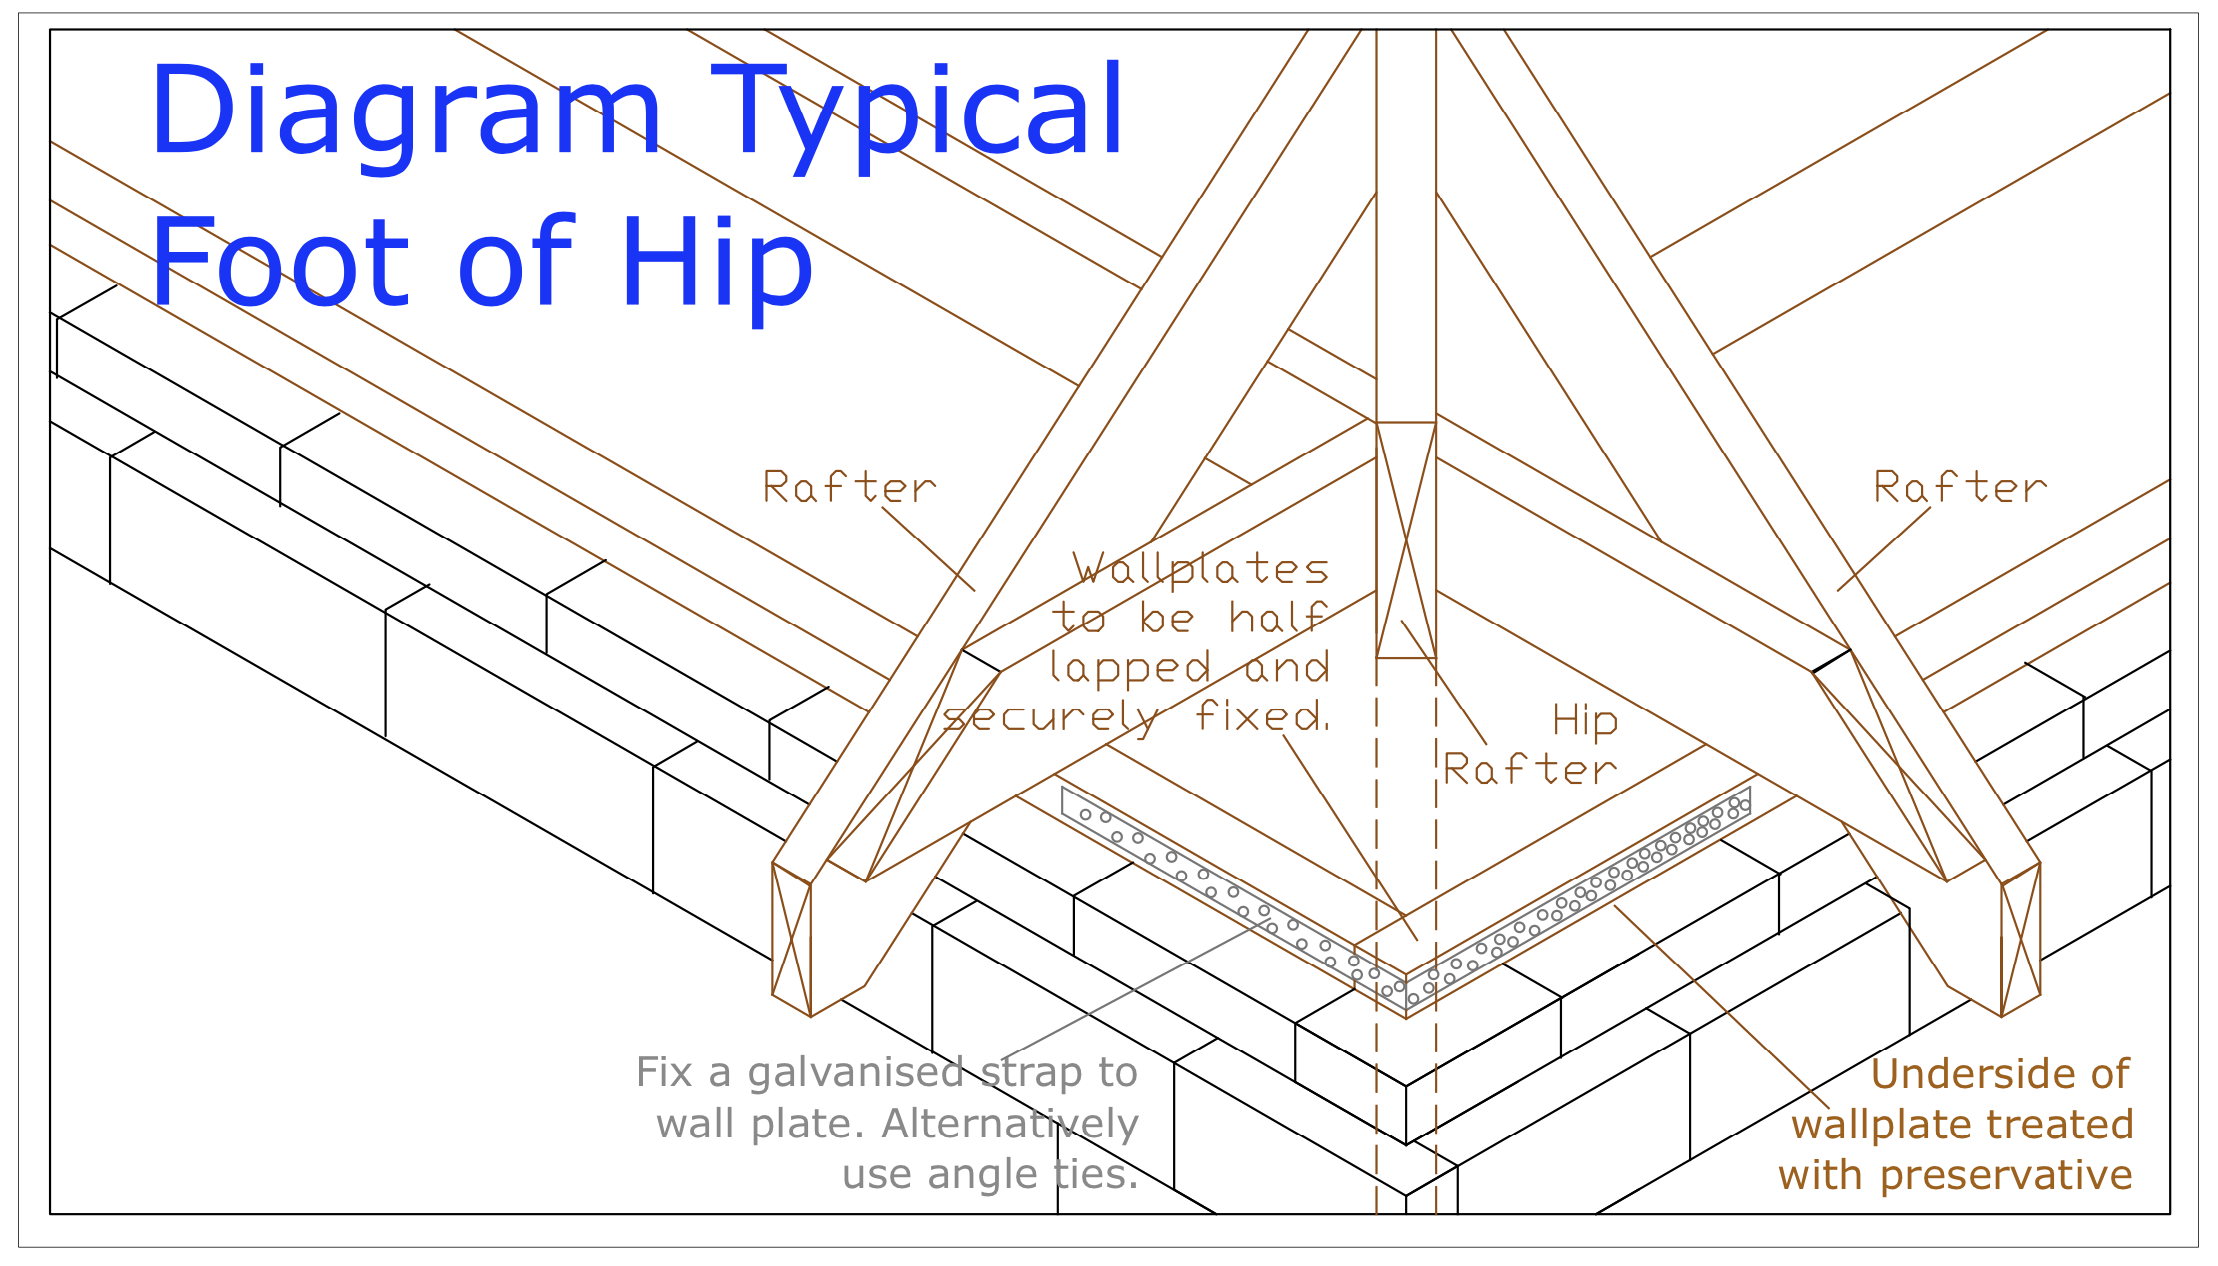 Diagram D34 - Foot of hip